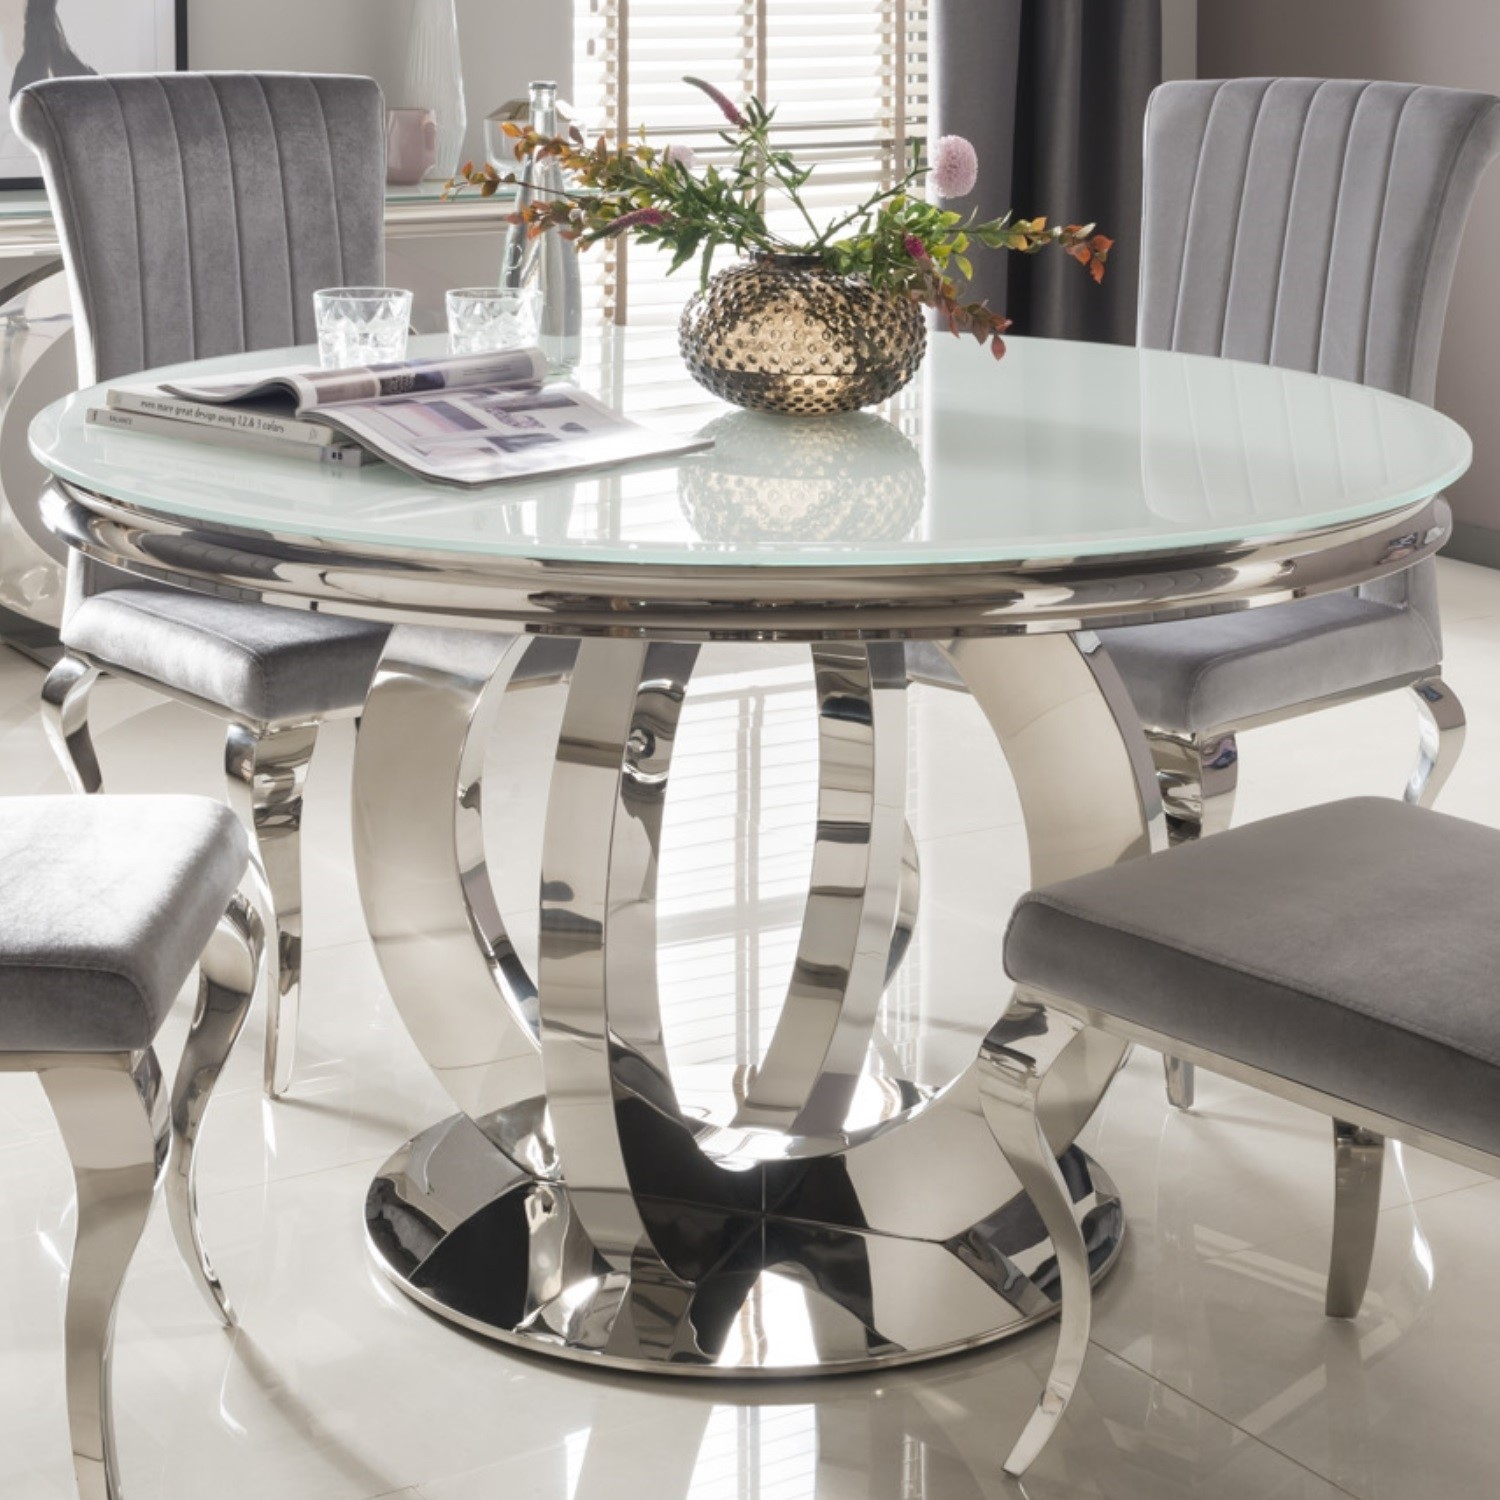 Orion Mirrored Round Dining Table With White Glass Top Vida Living Furniture123